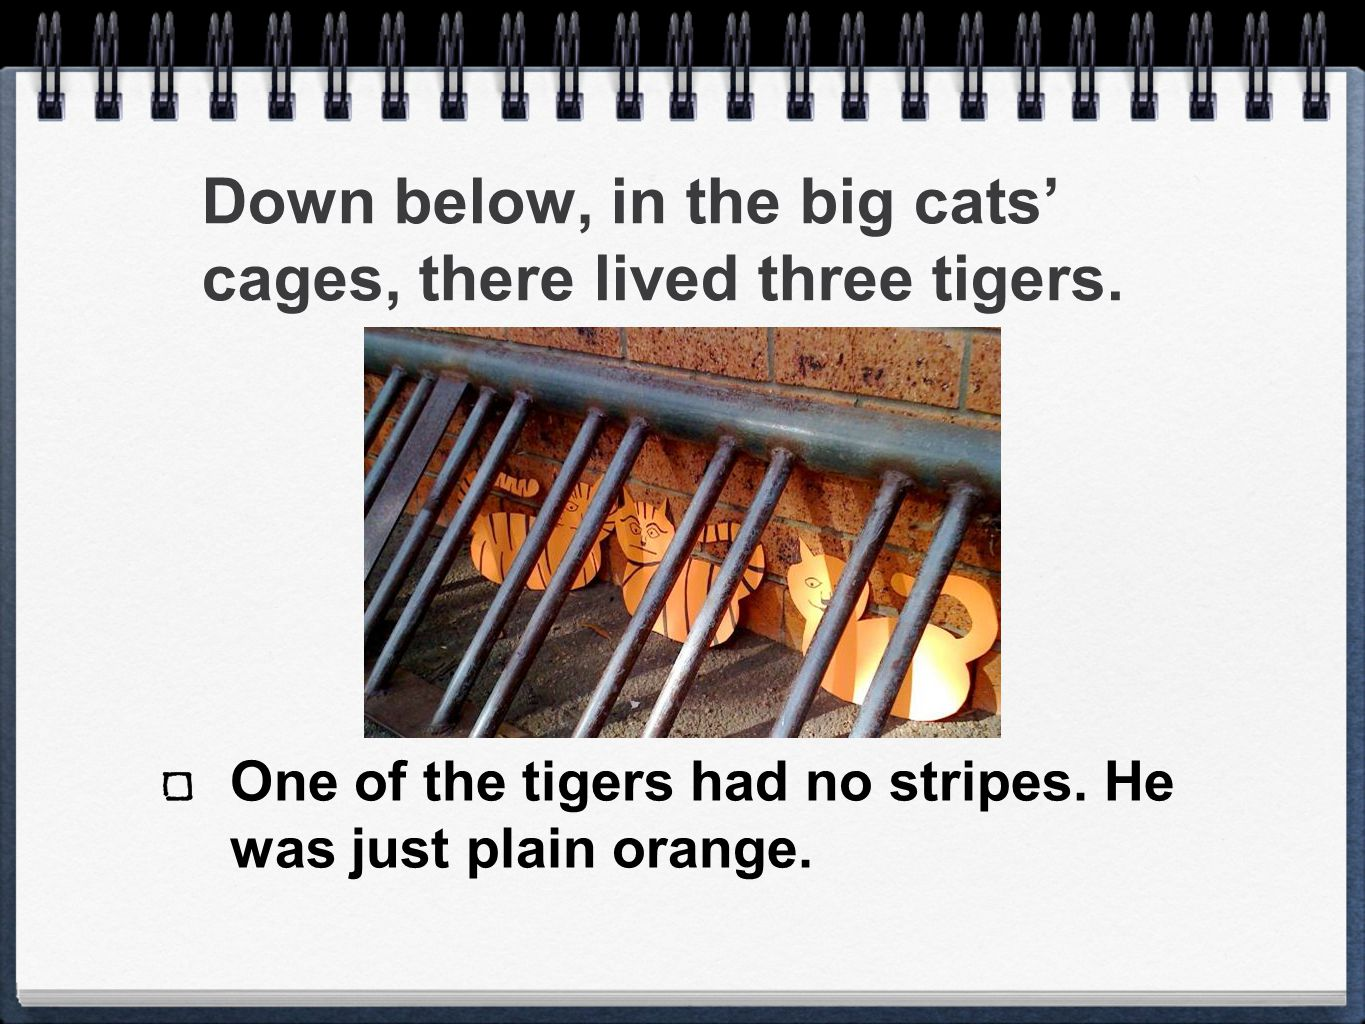 Down below, in the big cats' cages, there lived three tigers. One of the tigers had no stripes. He was just plain orange.